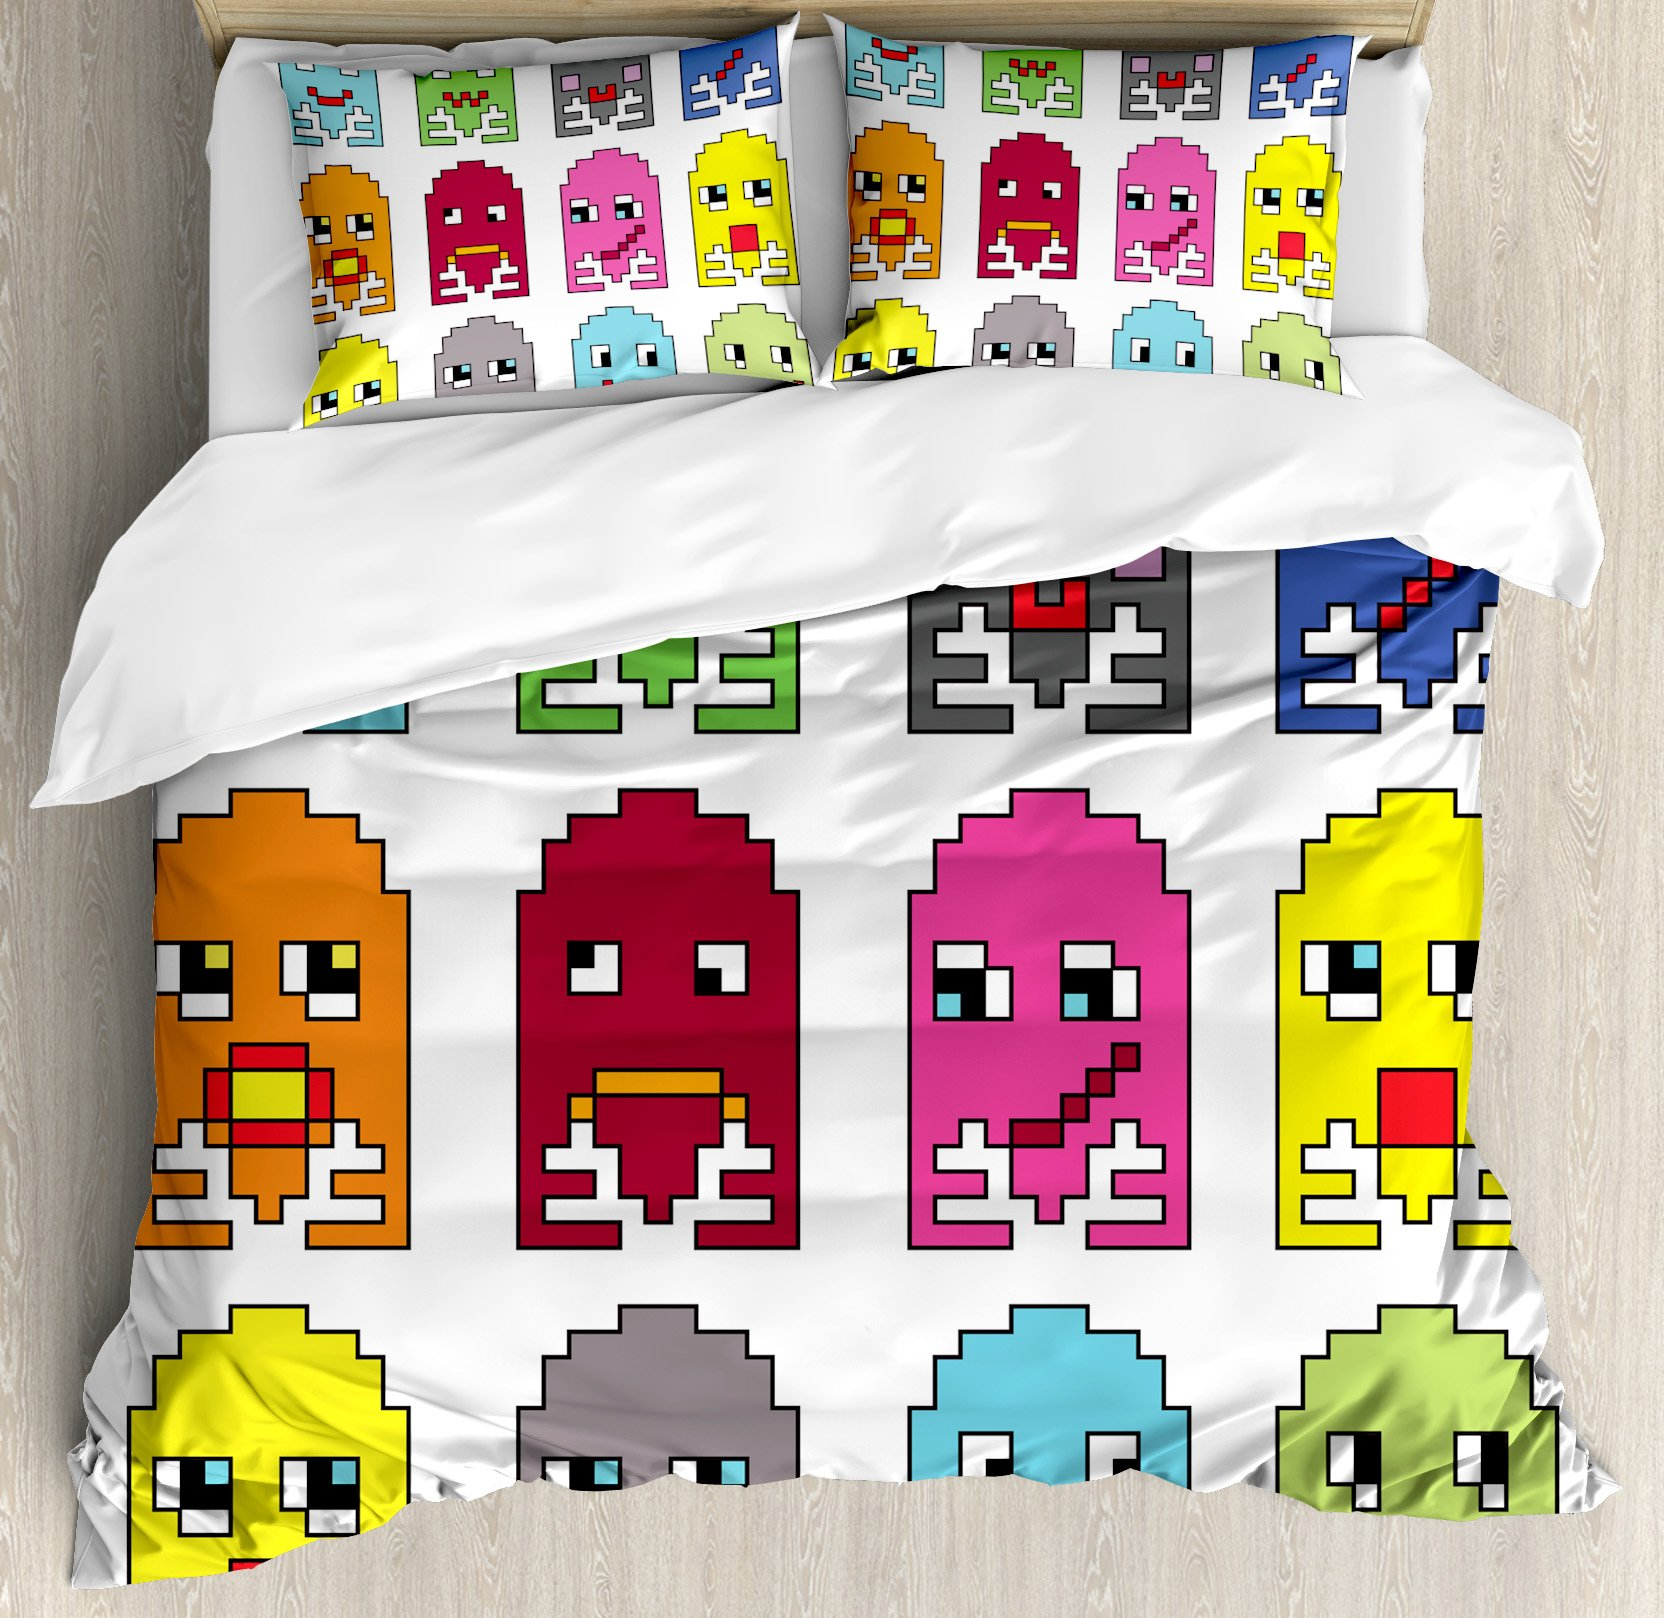 90s Duvet Cover Set by Ambesonne, 90's Vintage Video Games Style Cartoon Showing Vary Emotions with Stroke Art Print, 3 Piece Bedding Set with Pillow Shams, Queen / Full, Green Yellow